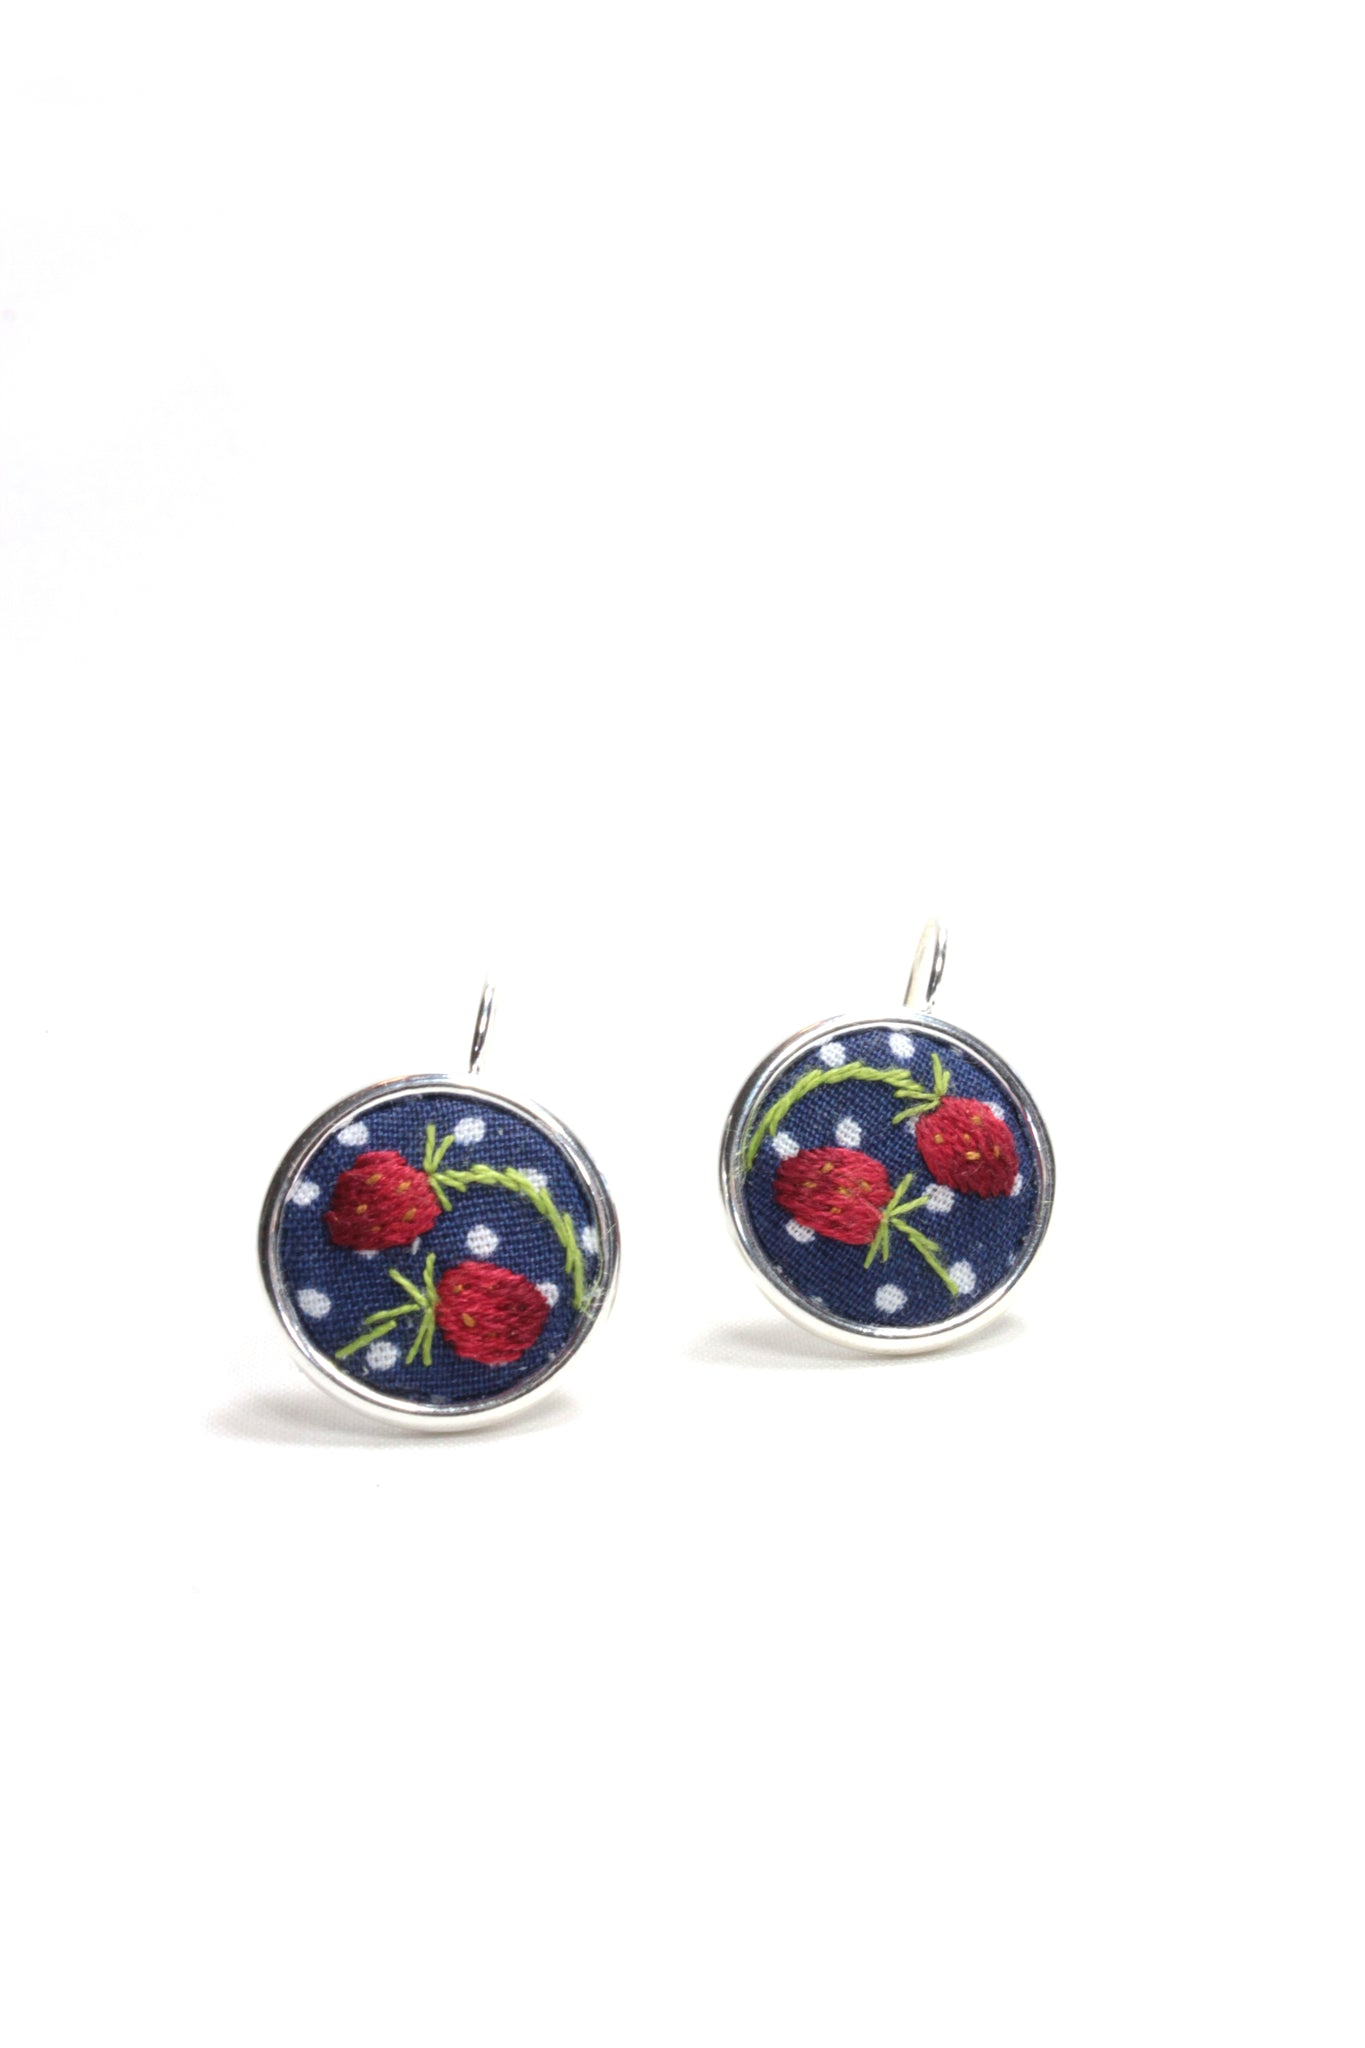 Embroidery Earrings - Strawberry